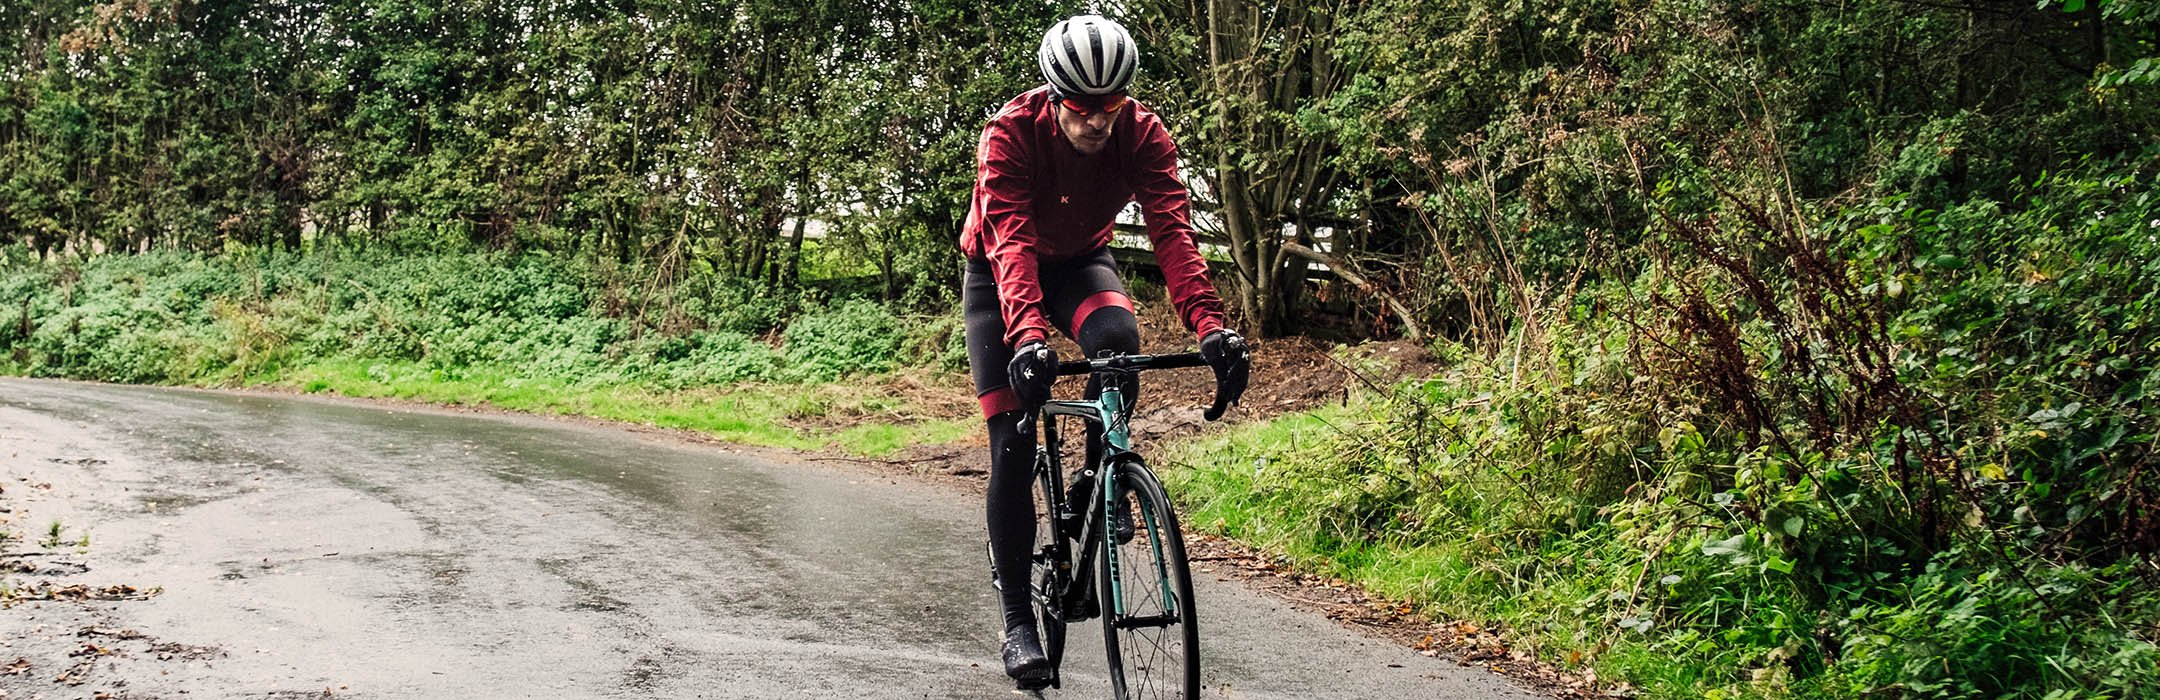 Katusha Wet Weather Protection Cycling Apparel